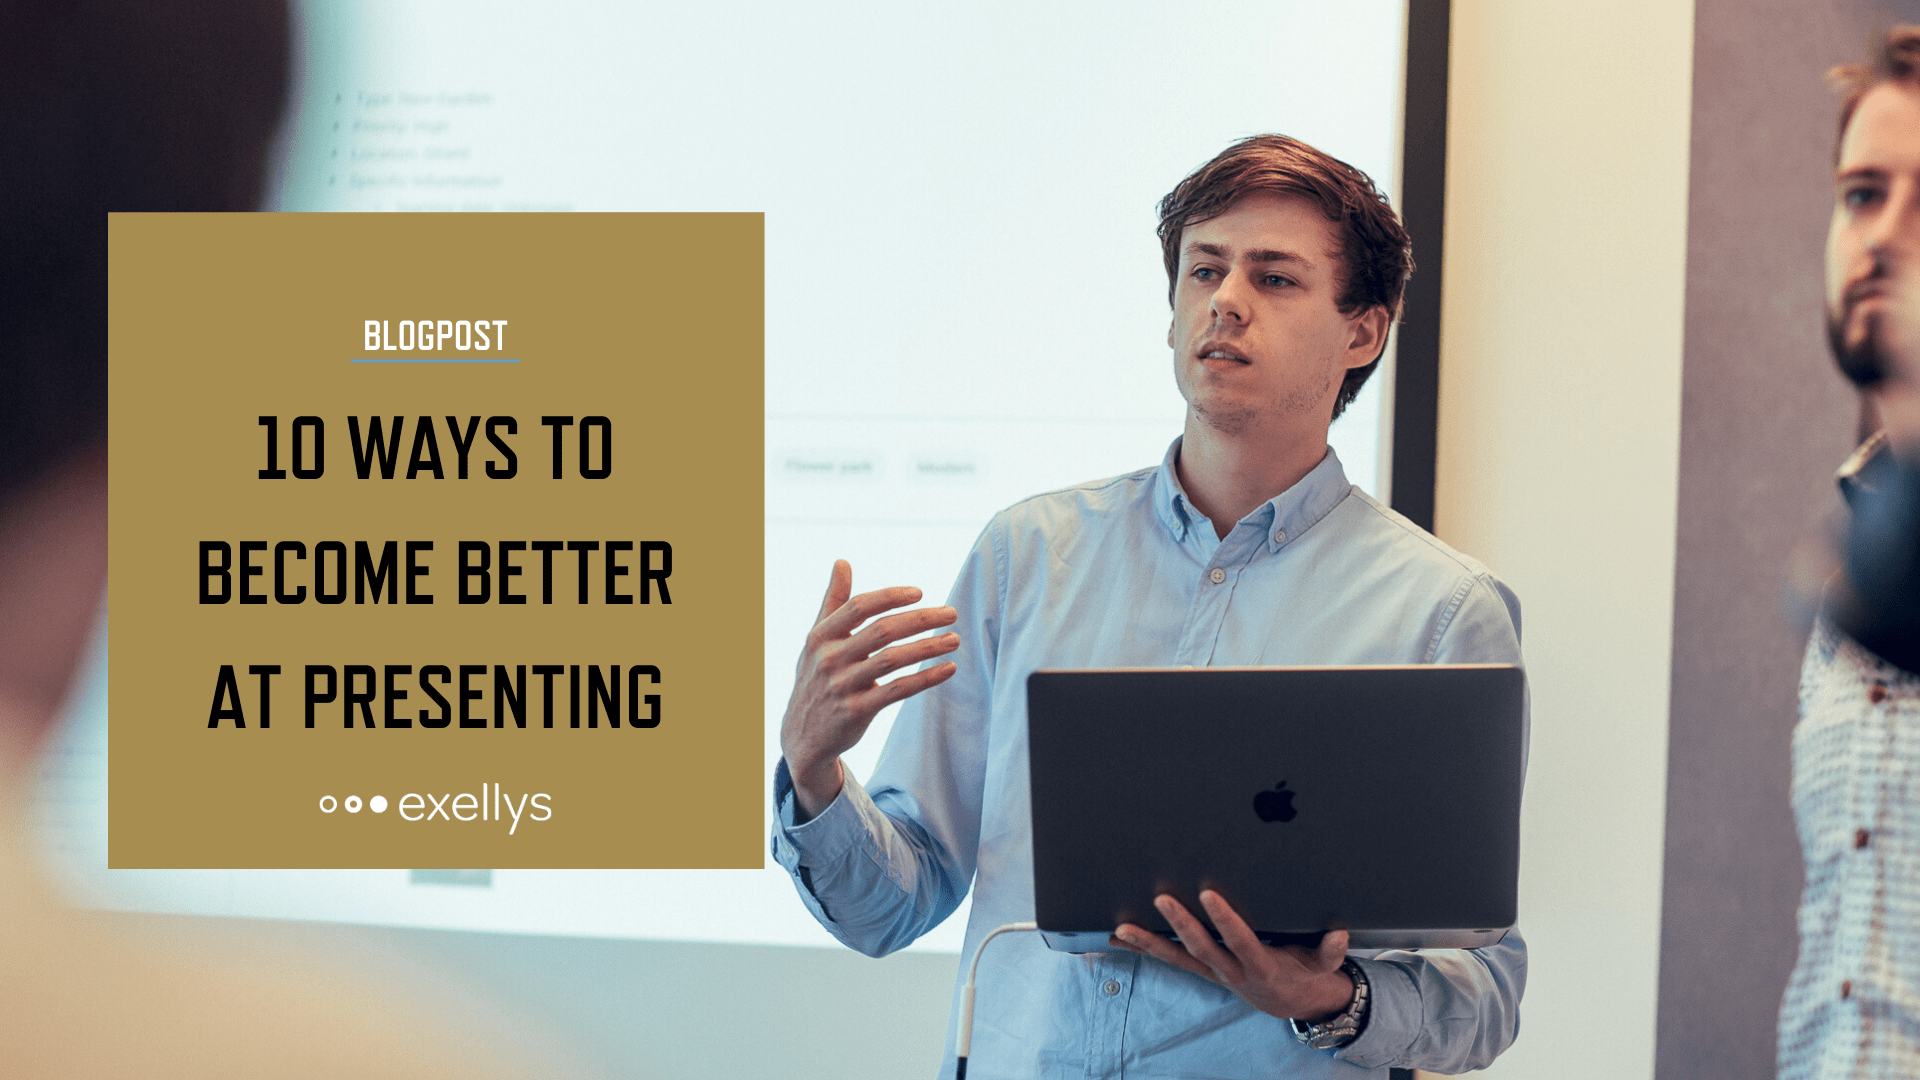 10 ways to become better at presenting